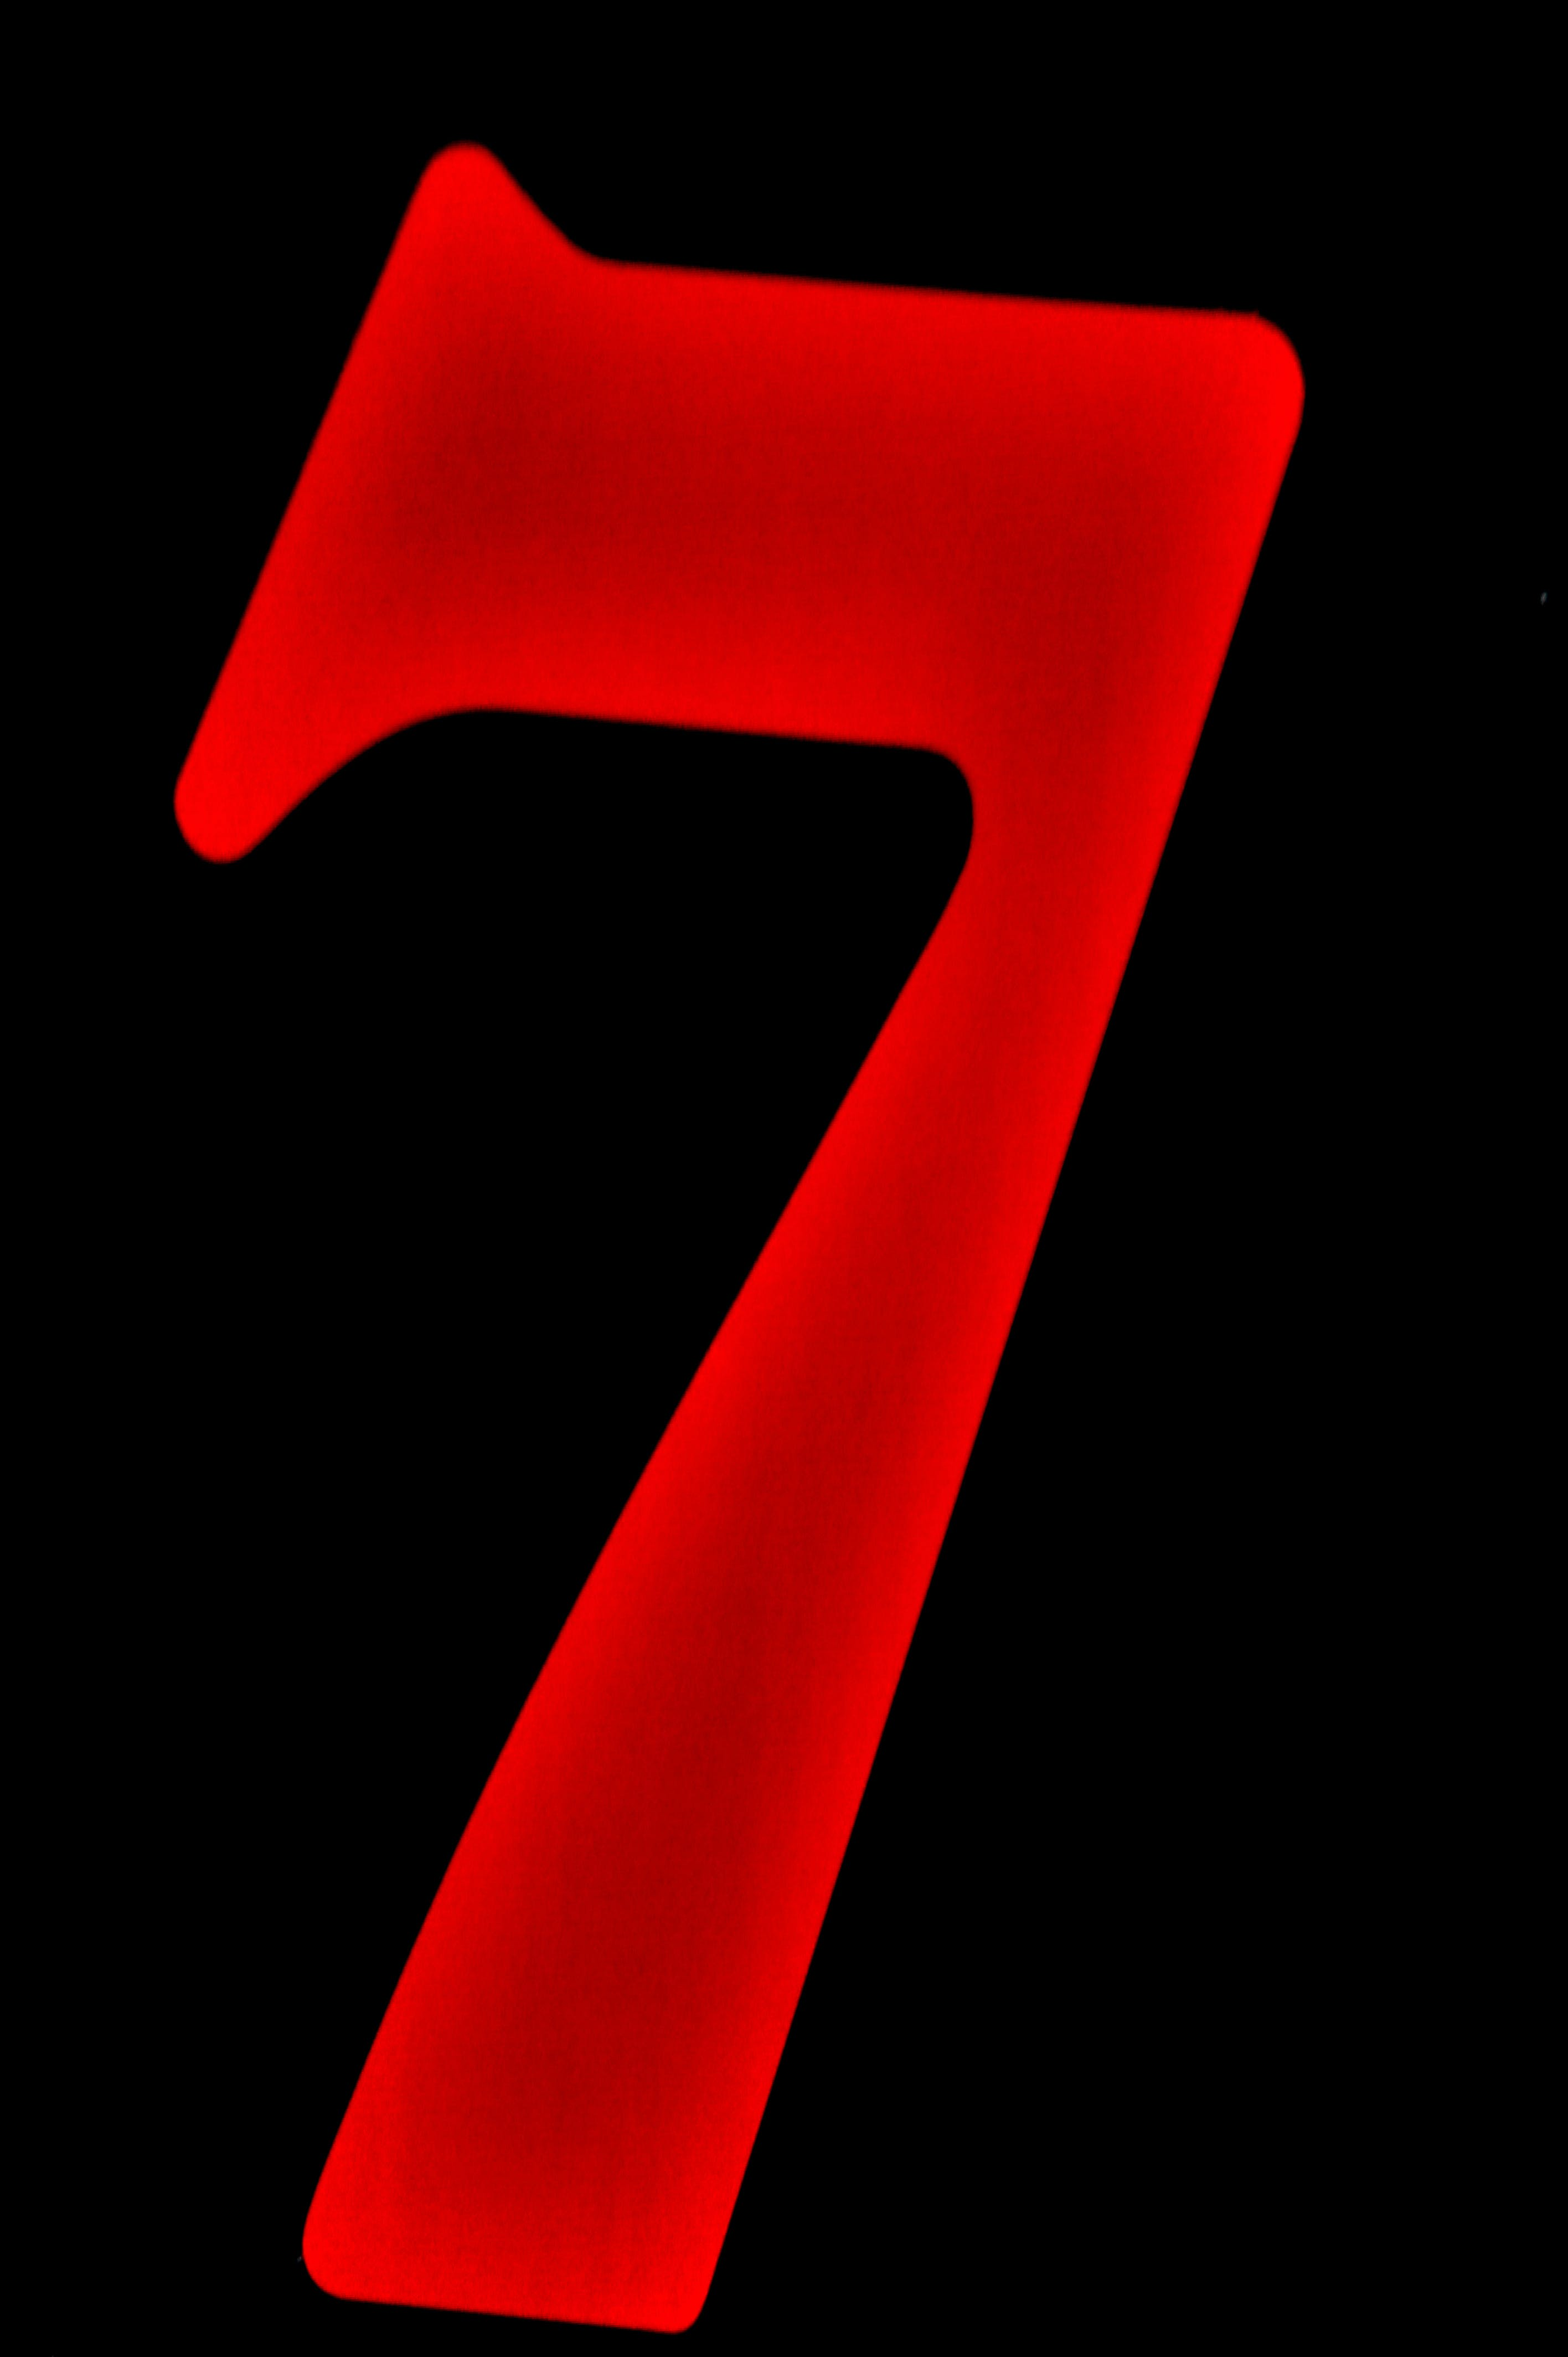 Free stock photo of seven, number seven, number 7, red seven